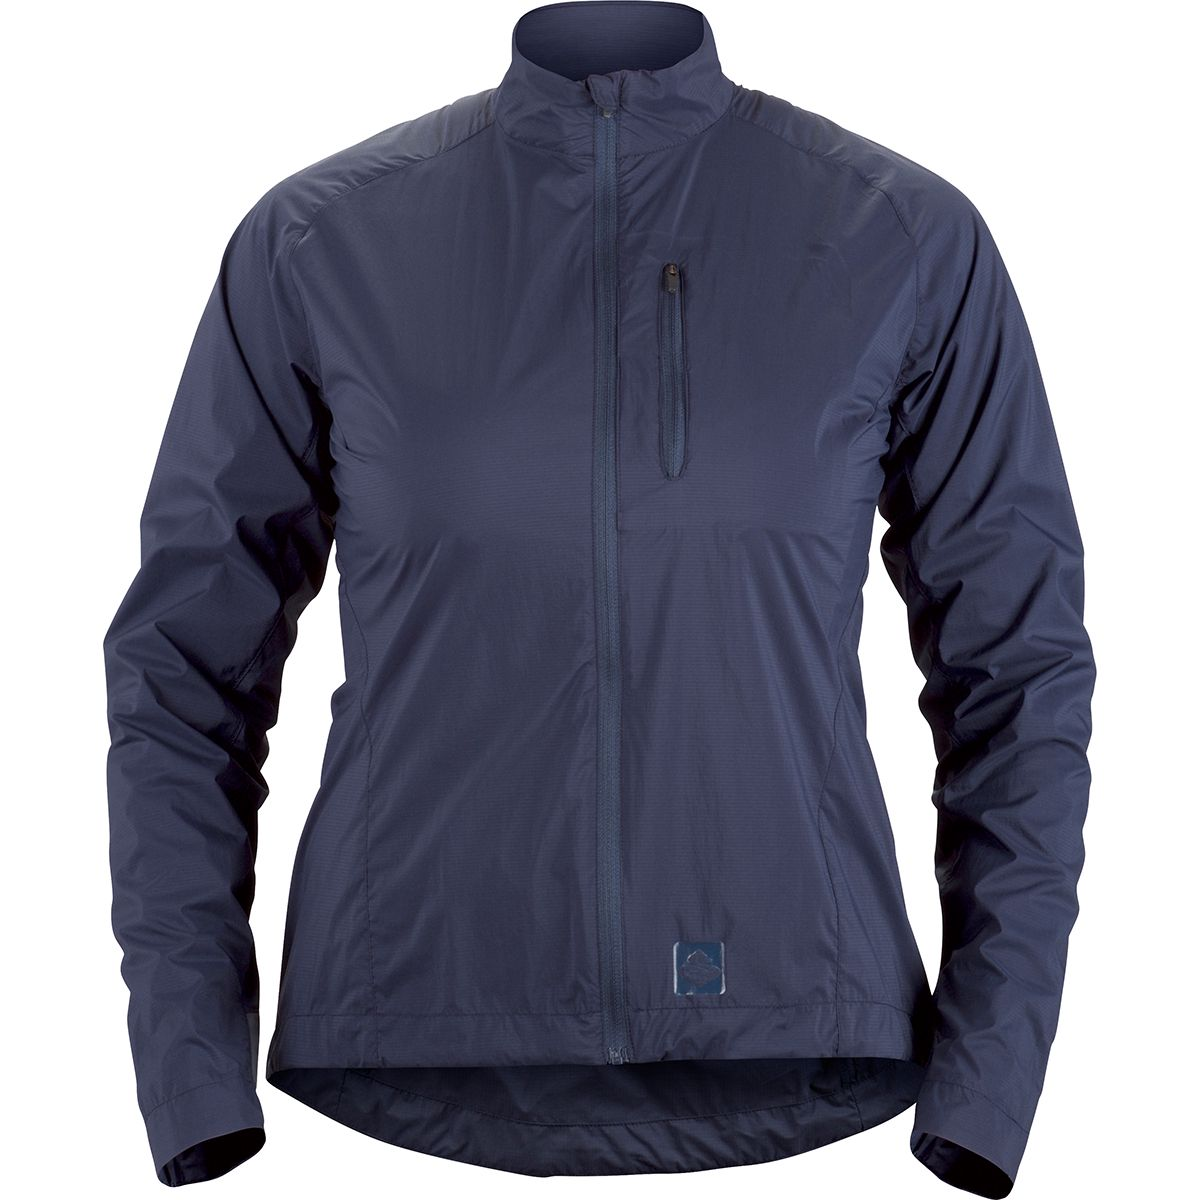 Sweet Protection Damen Air Jacke (Größe S, Blau) | Windbreaker > Damen